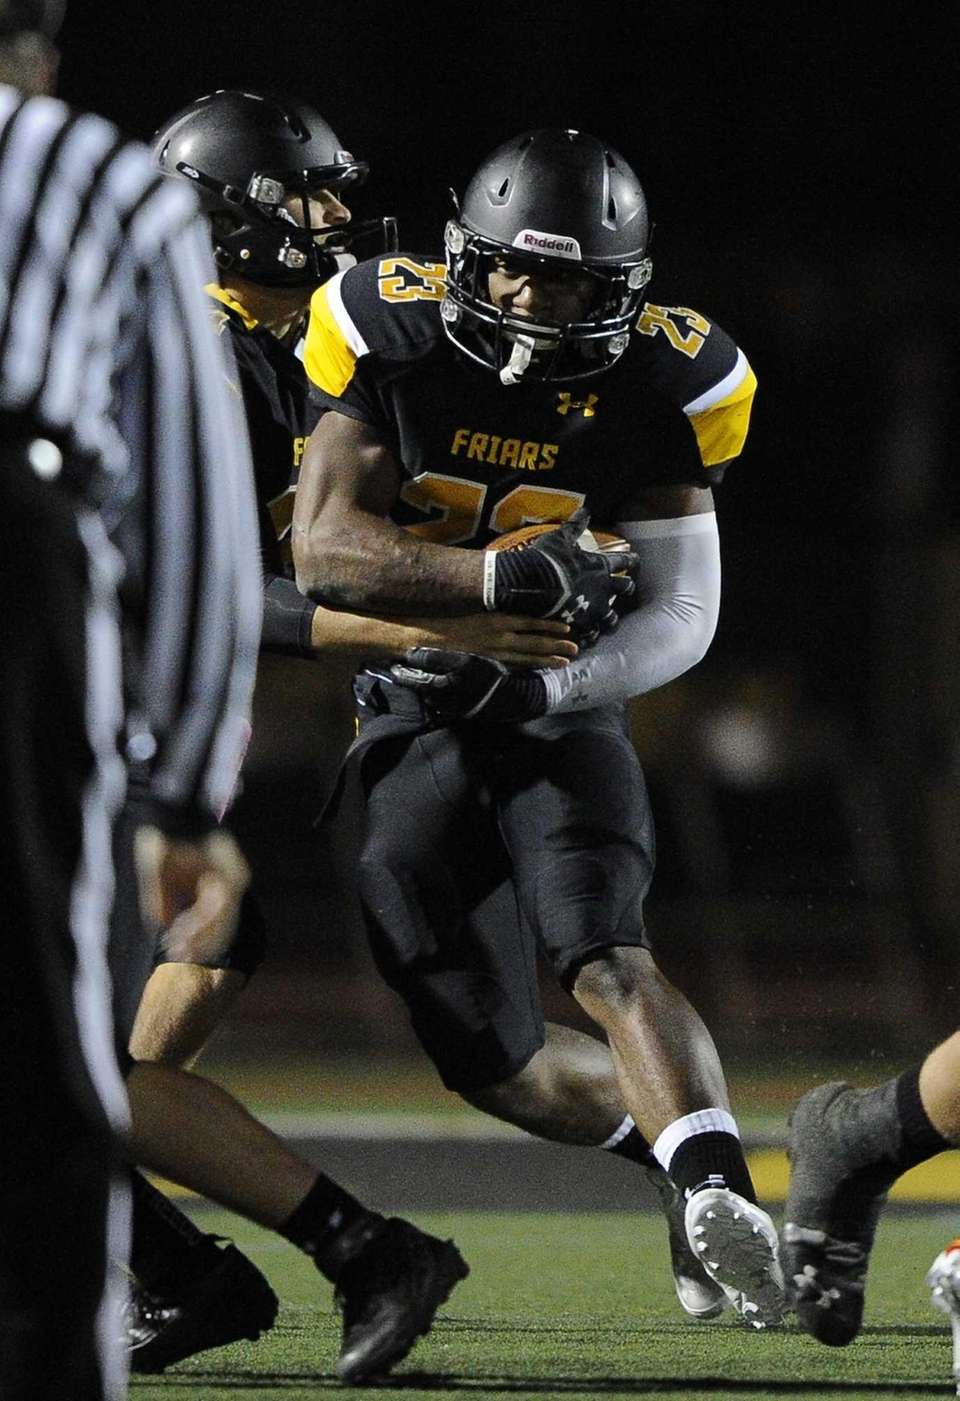 St. Anthony's running back Jordan Gowins carries the